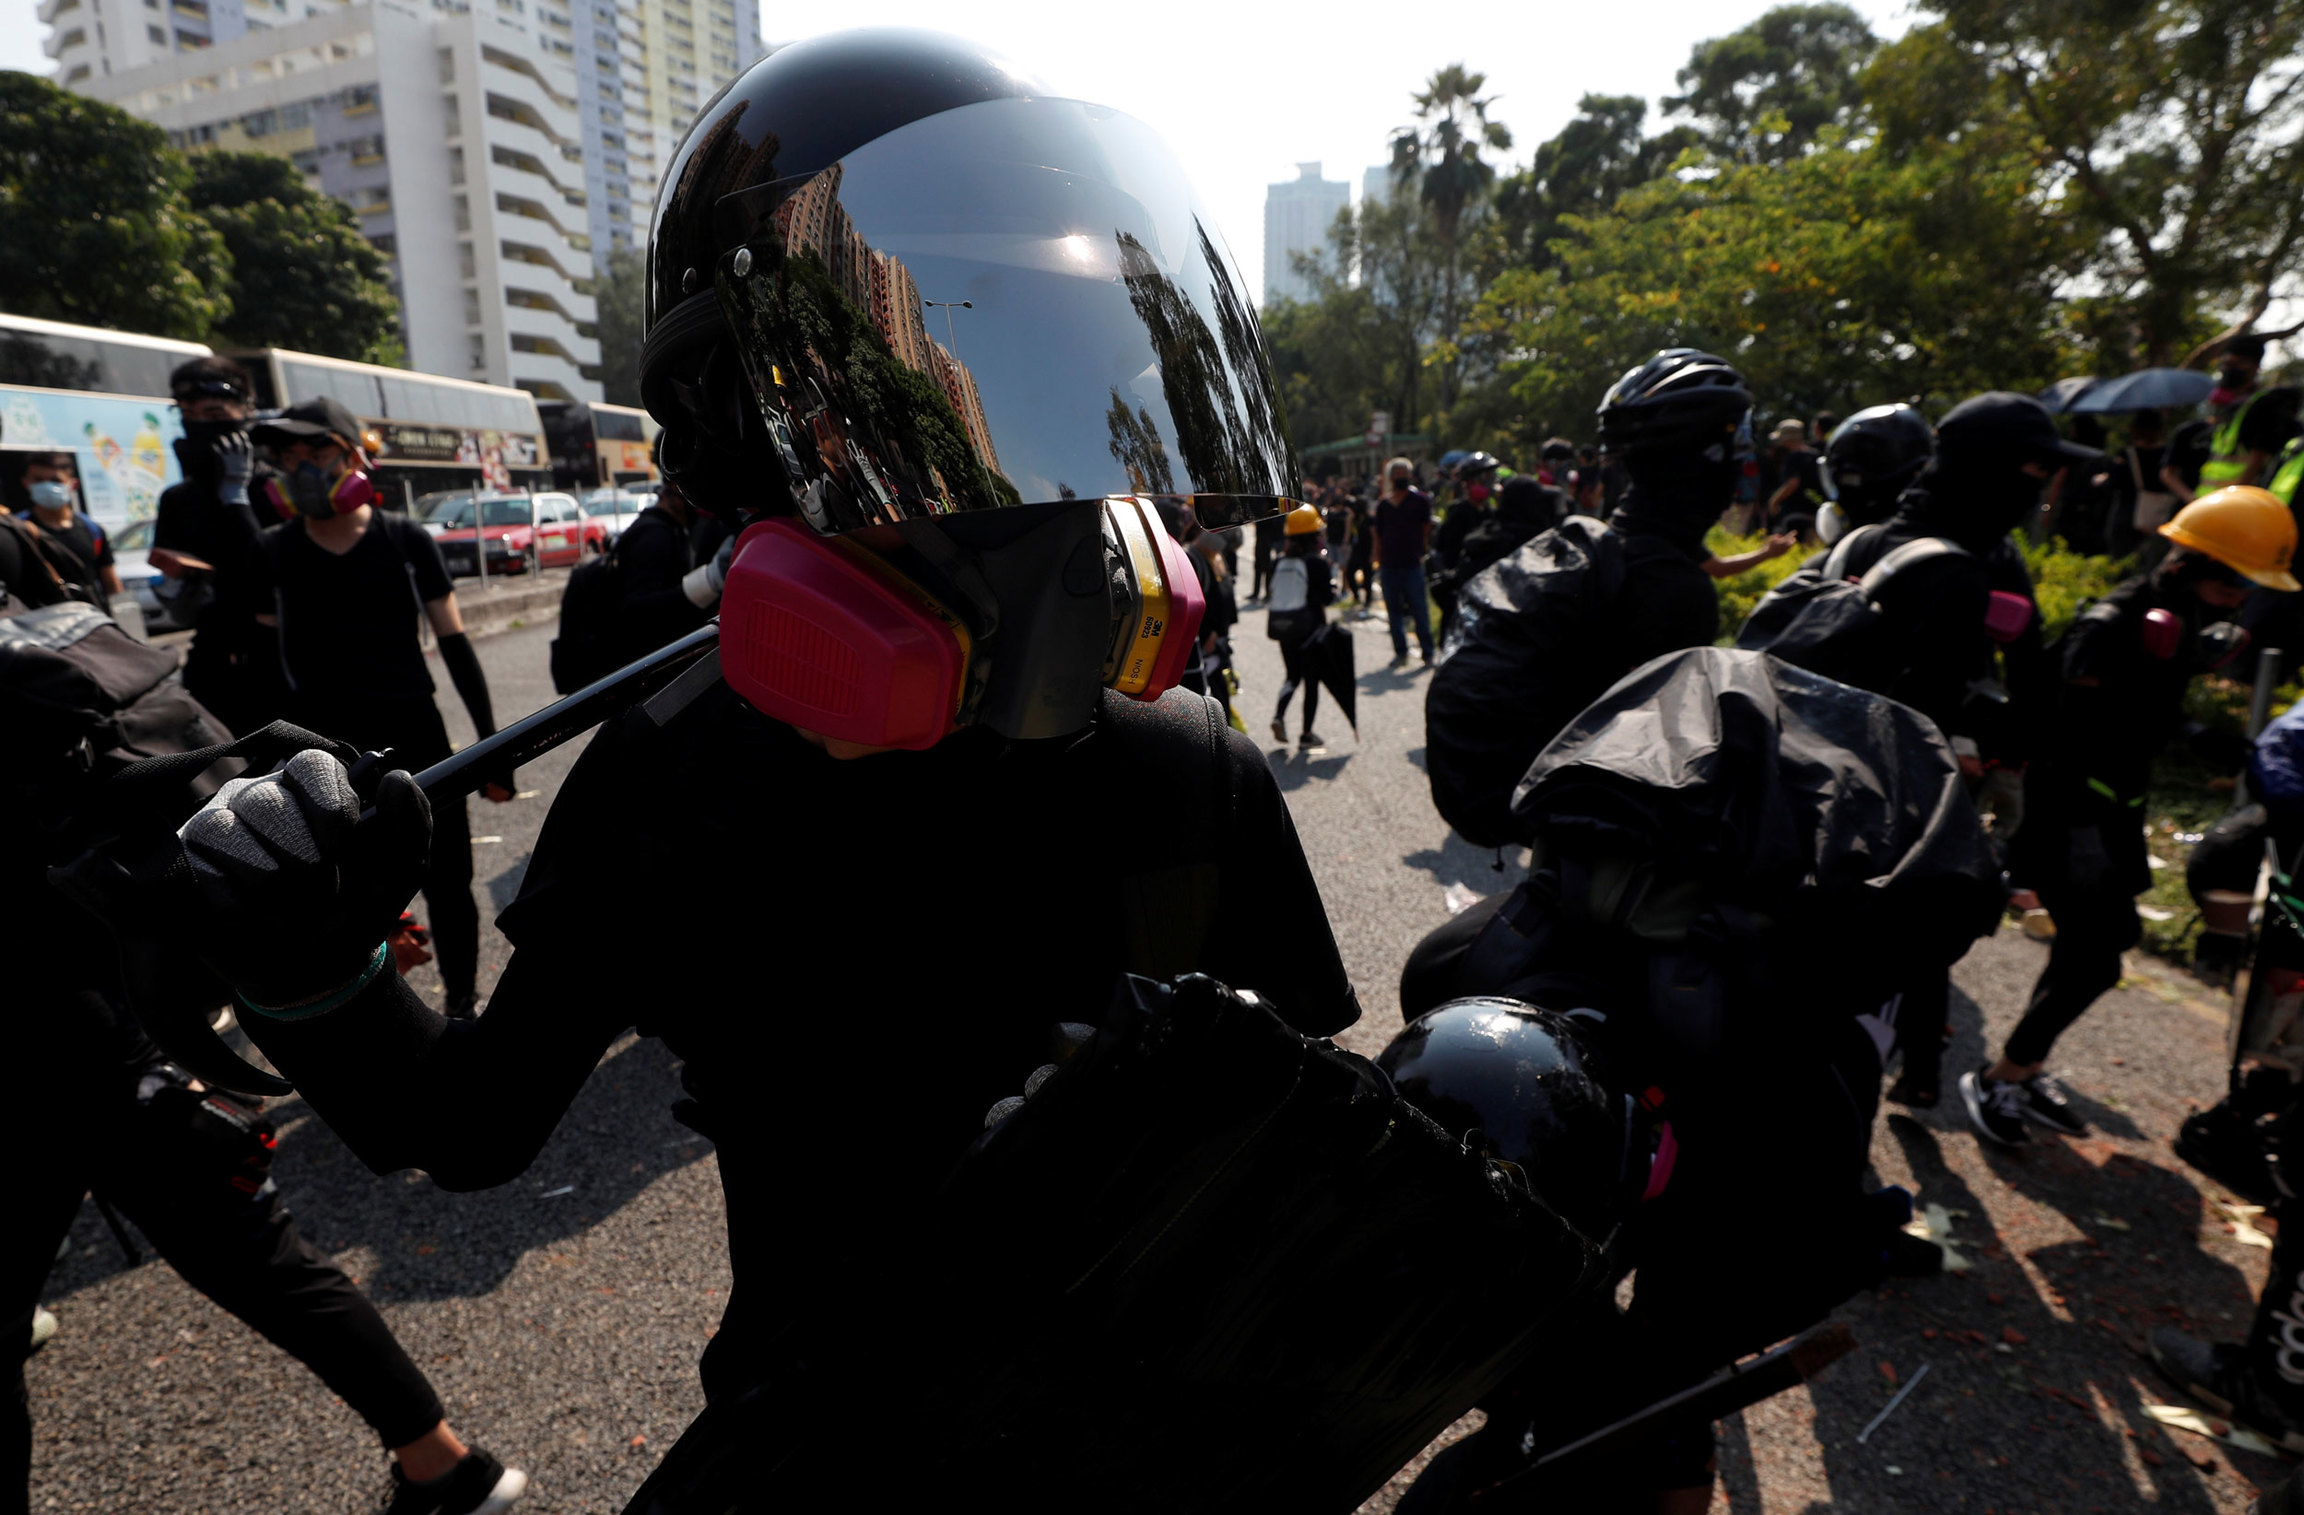 A protester is shown wearing a helmet with a reflective face shield and a pink gas mask.